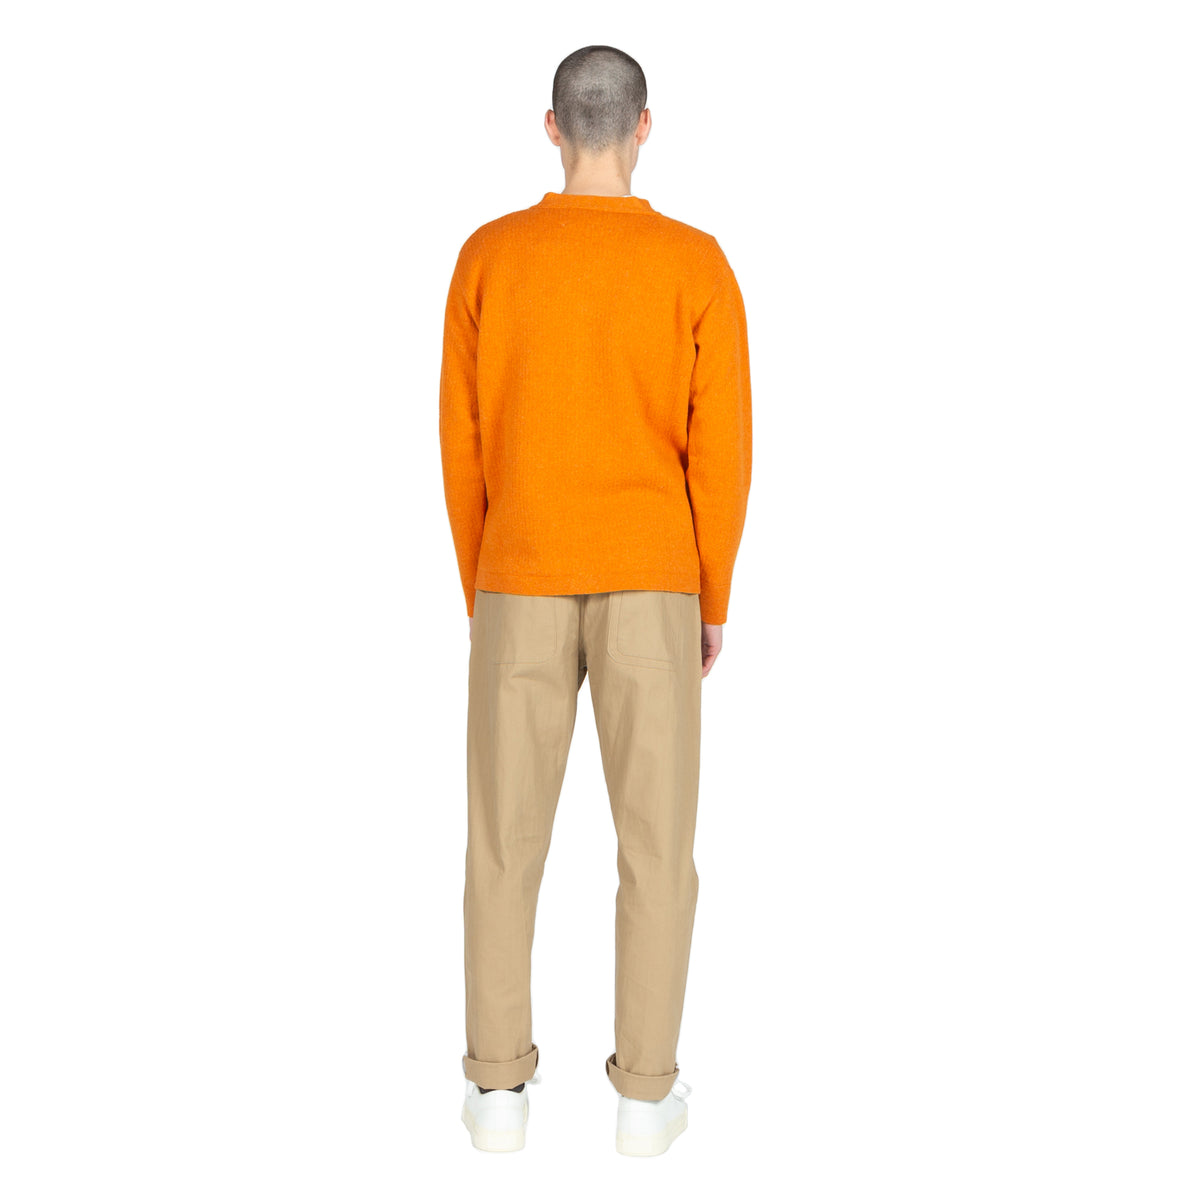 The English Difference Cardigan in Orange by Garbstore